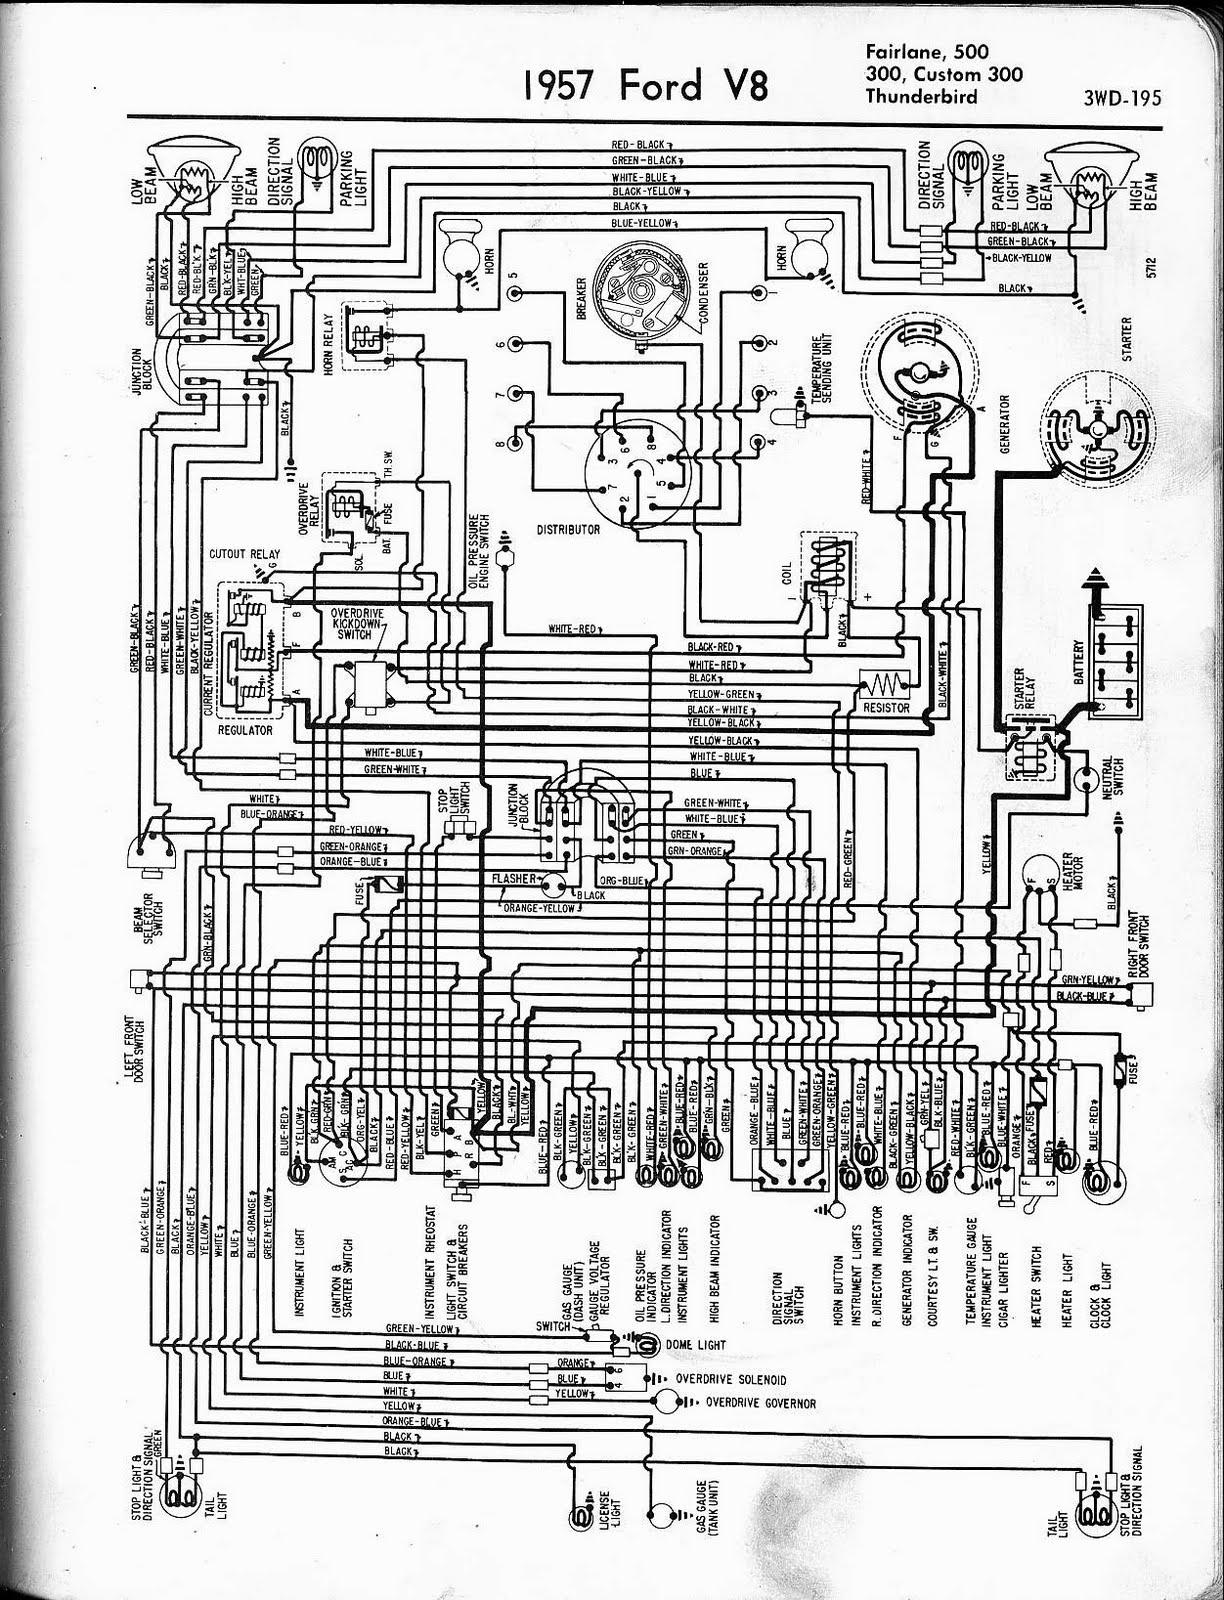 small resolution of free auto wiring diagram 1957 ford v8 fairlane custom300 1947 plymouth wiring harness plymouth duster wiring